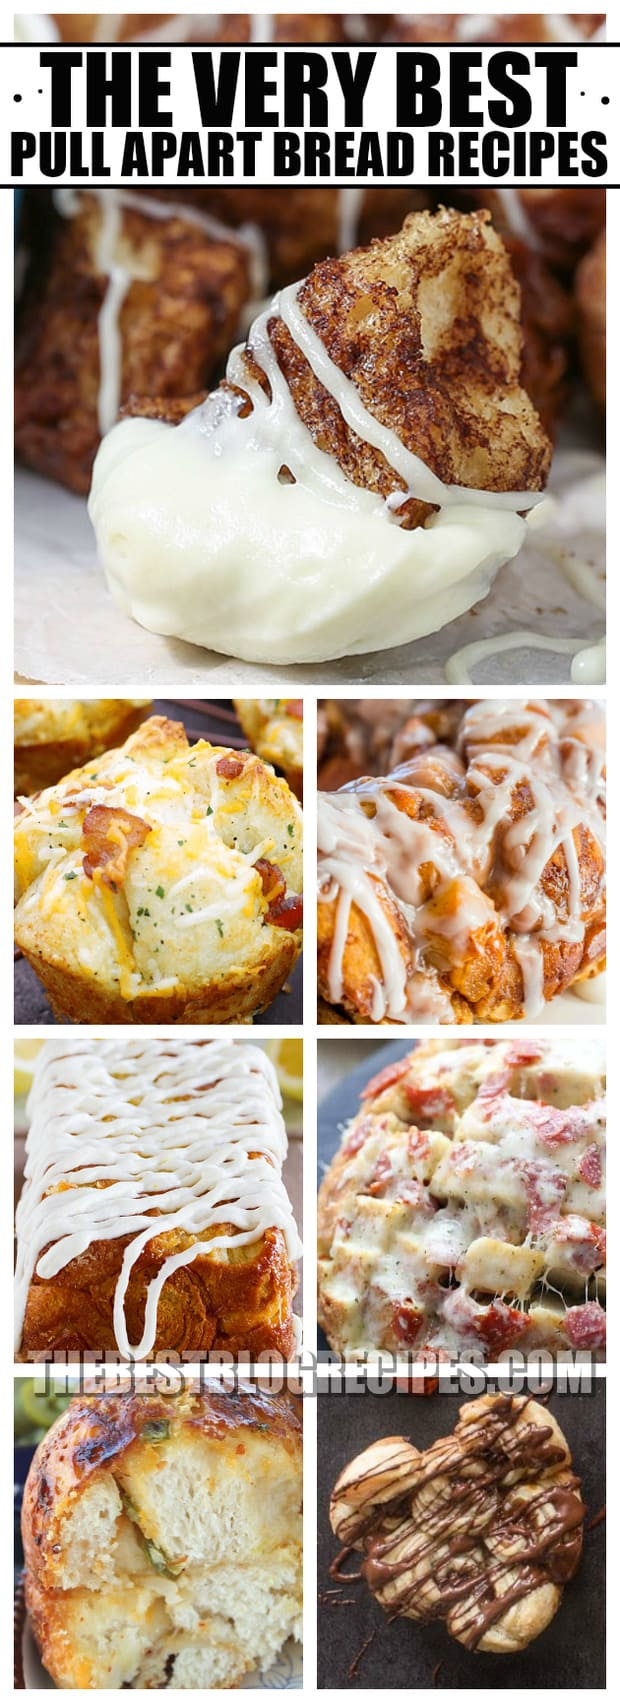 We are so excited to share The Best Pull Apart Bread Recipes because we know you will want to make them time and time again. With sweet and savory flavors to choose from, these breads are perfect for any and every yummy occasion!